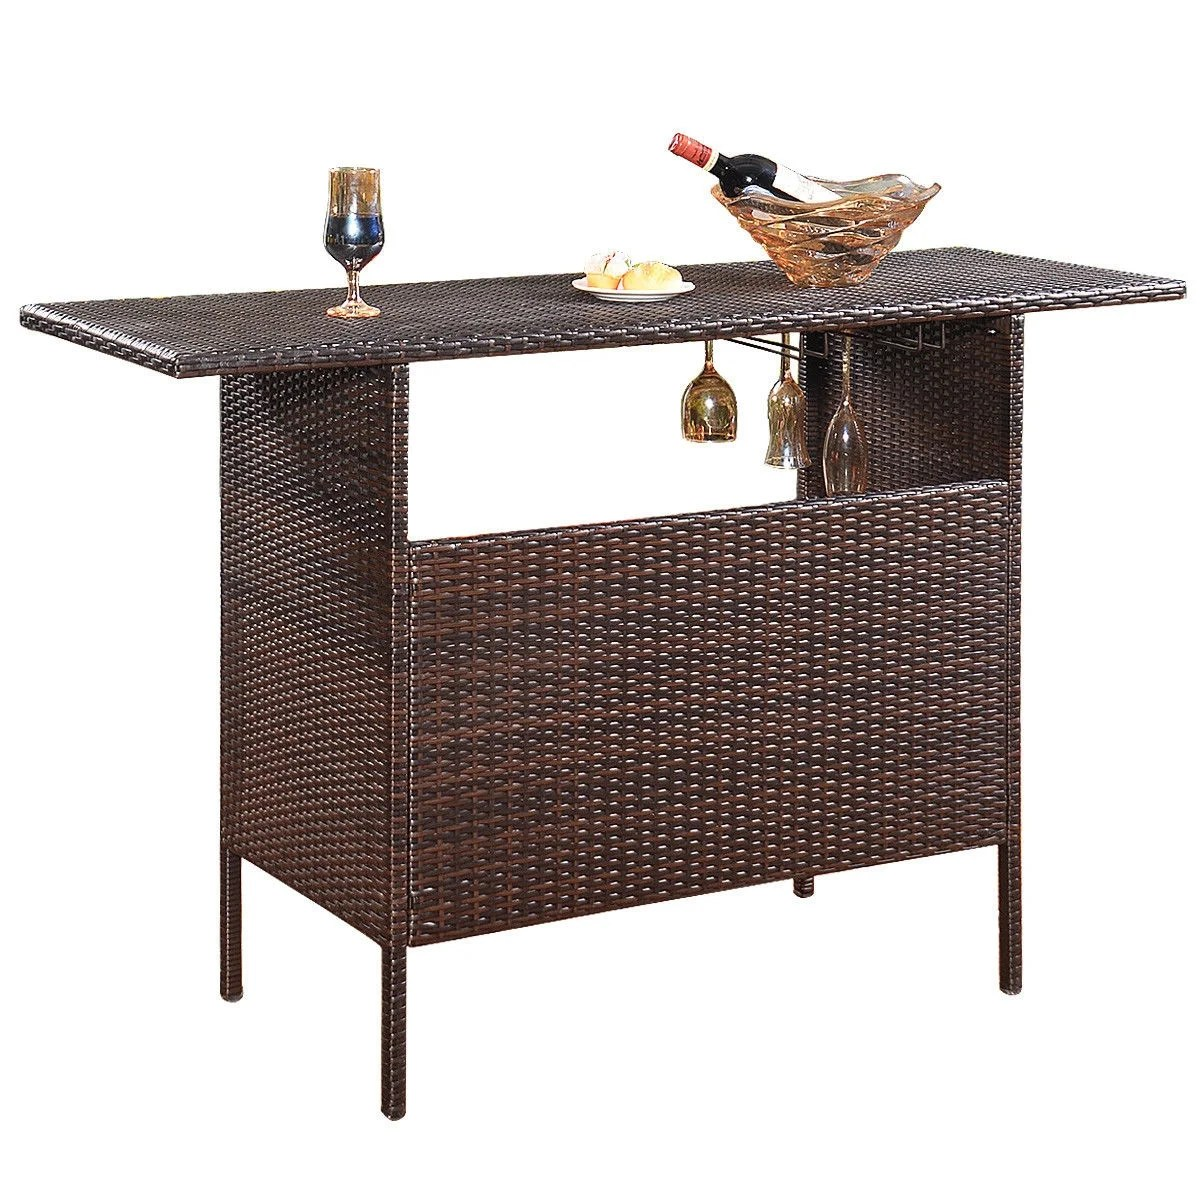 Rattan Table Costway Outdoor Rattan Wicker Bar Counter Table Shelves Garden Patio Furniture Brown